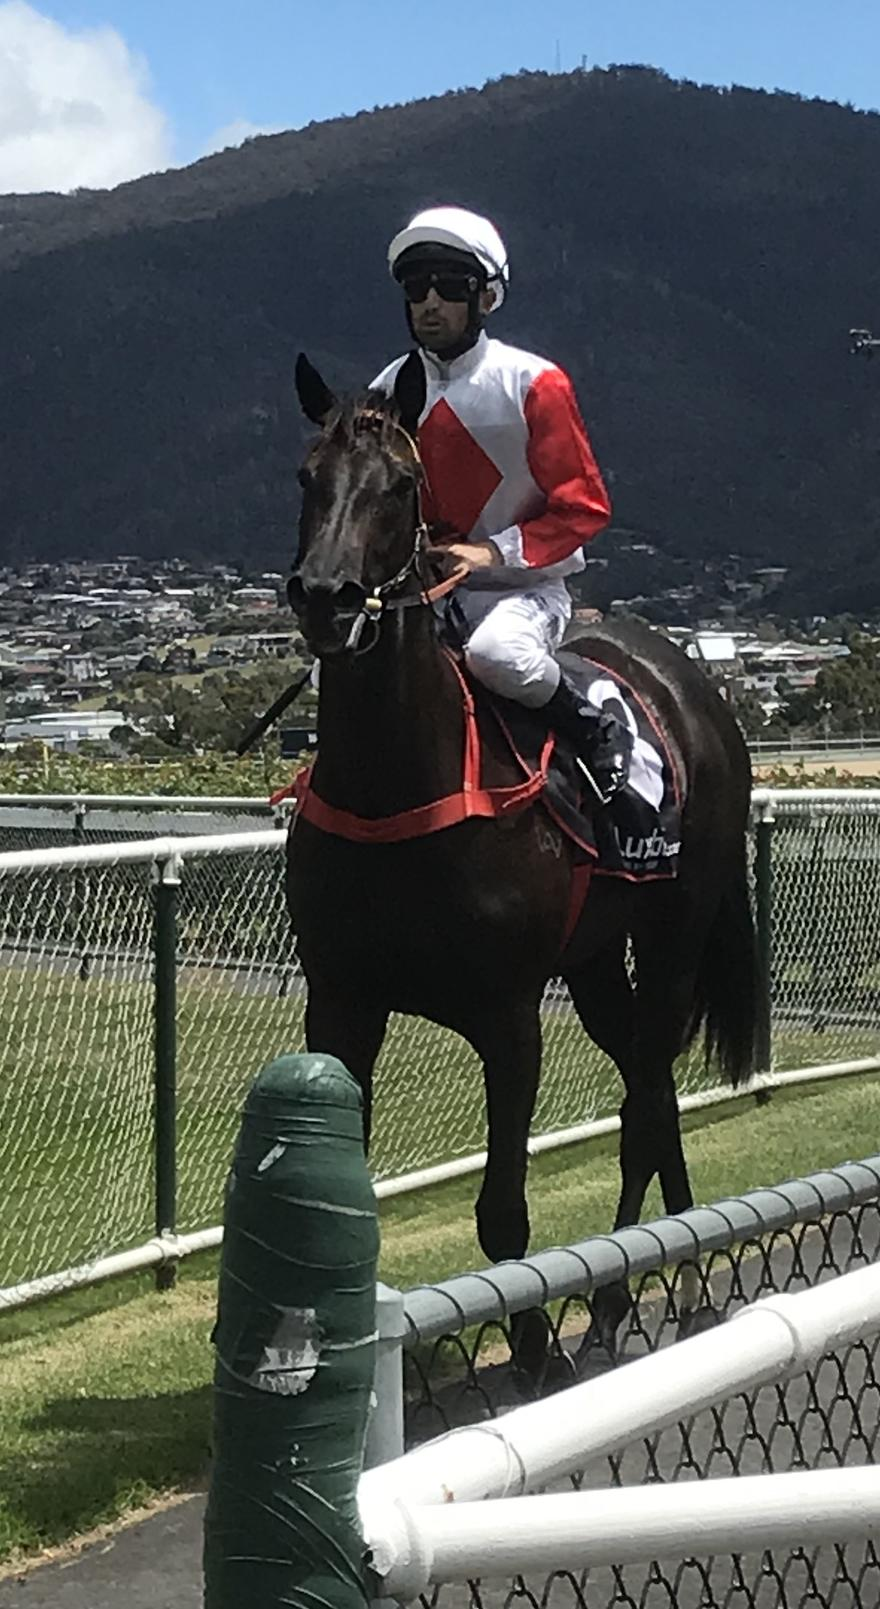 Mystic Journey ends with impressive win in Hobart